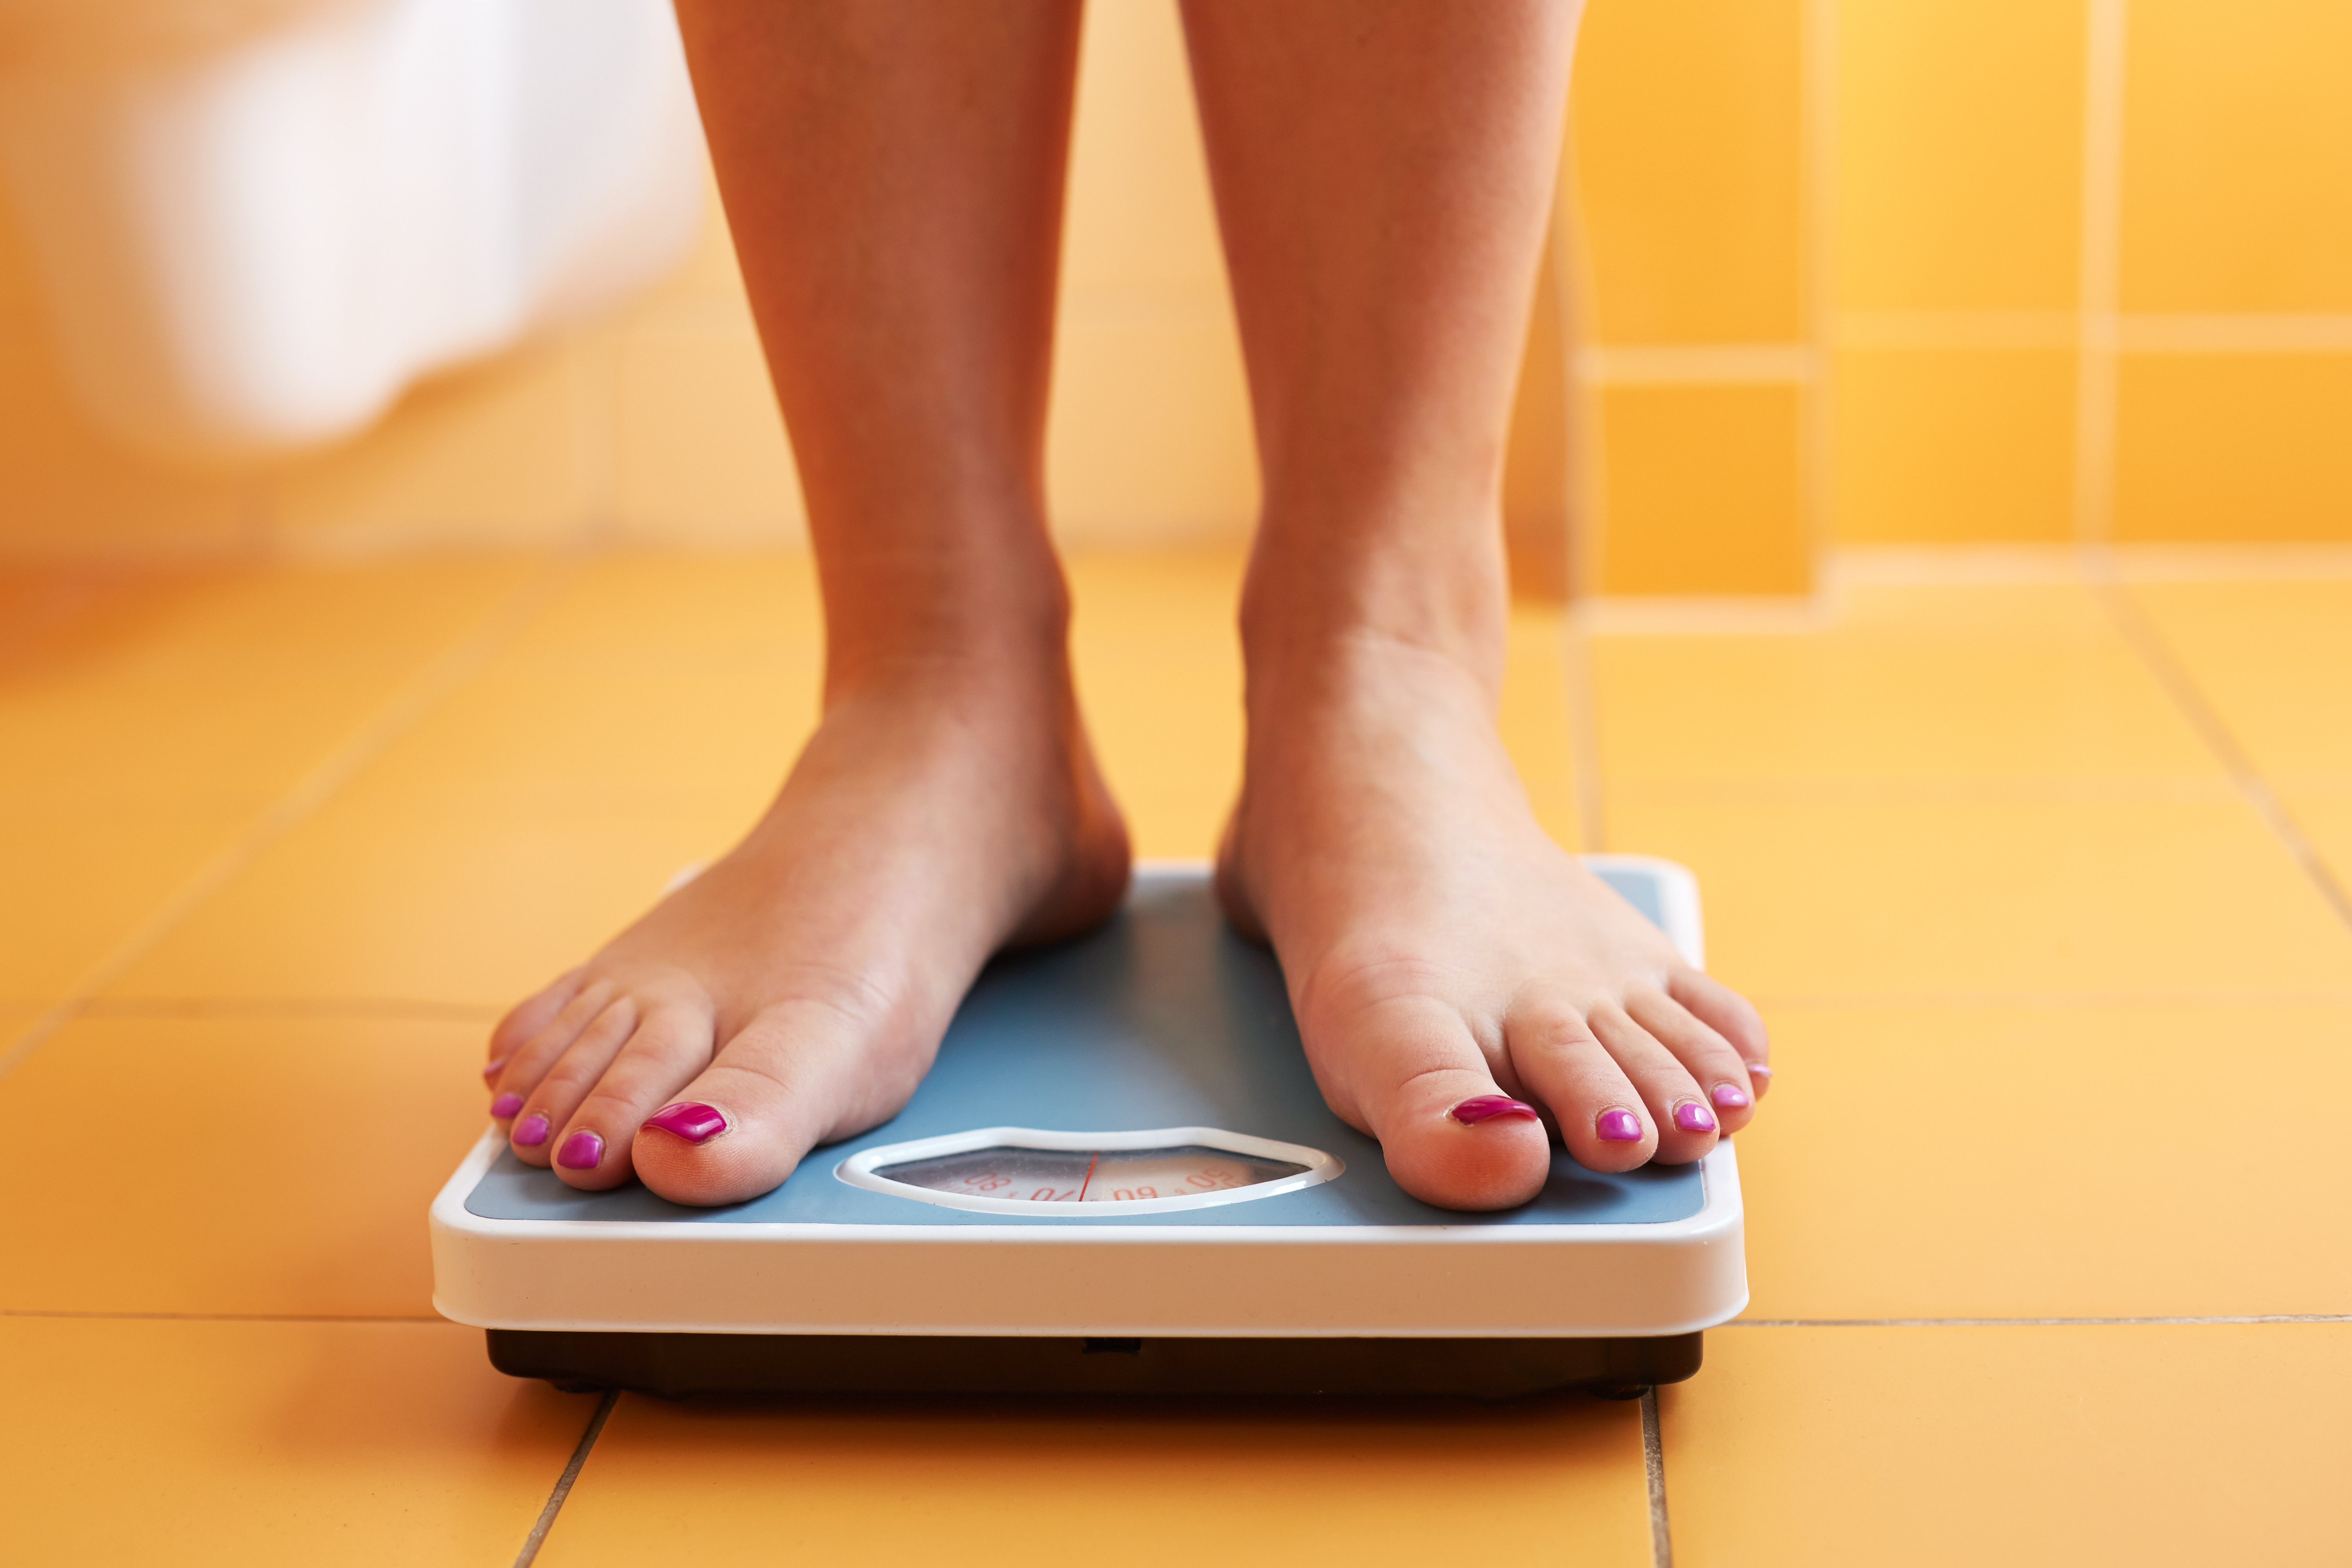 Best accurate bathroom scales - Download Weight Loss Trick Using Bathroom Scale